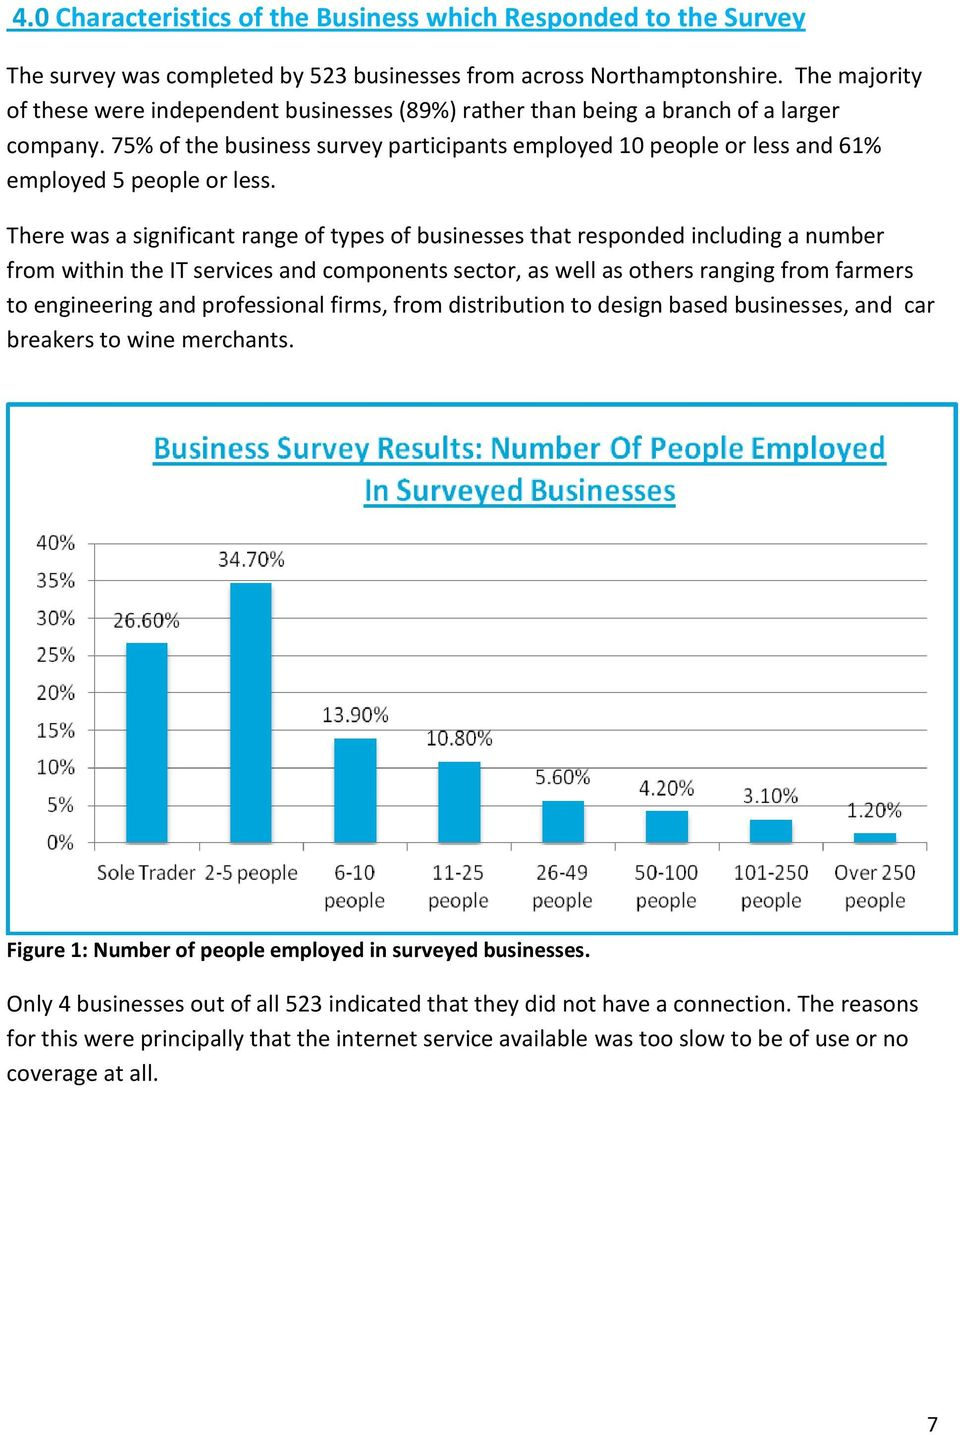 75% of the business survey participants employed 10 people or less and 61% employed 5 people or less.